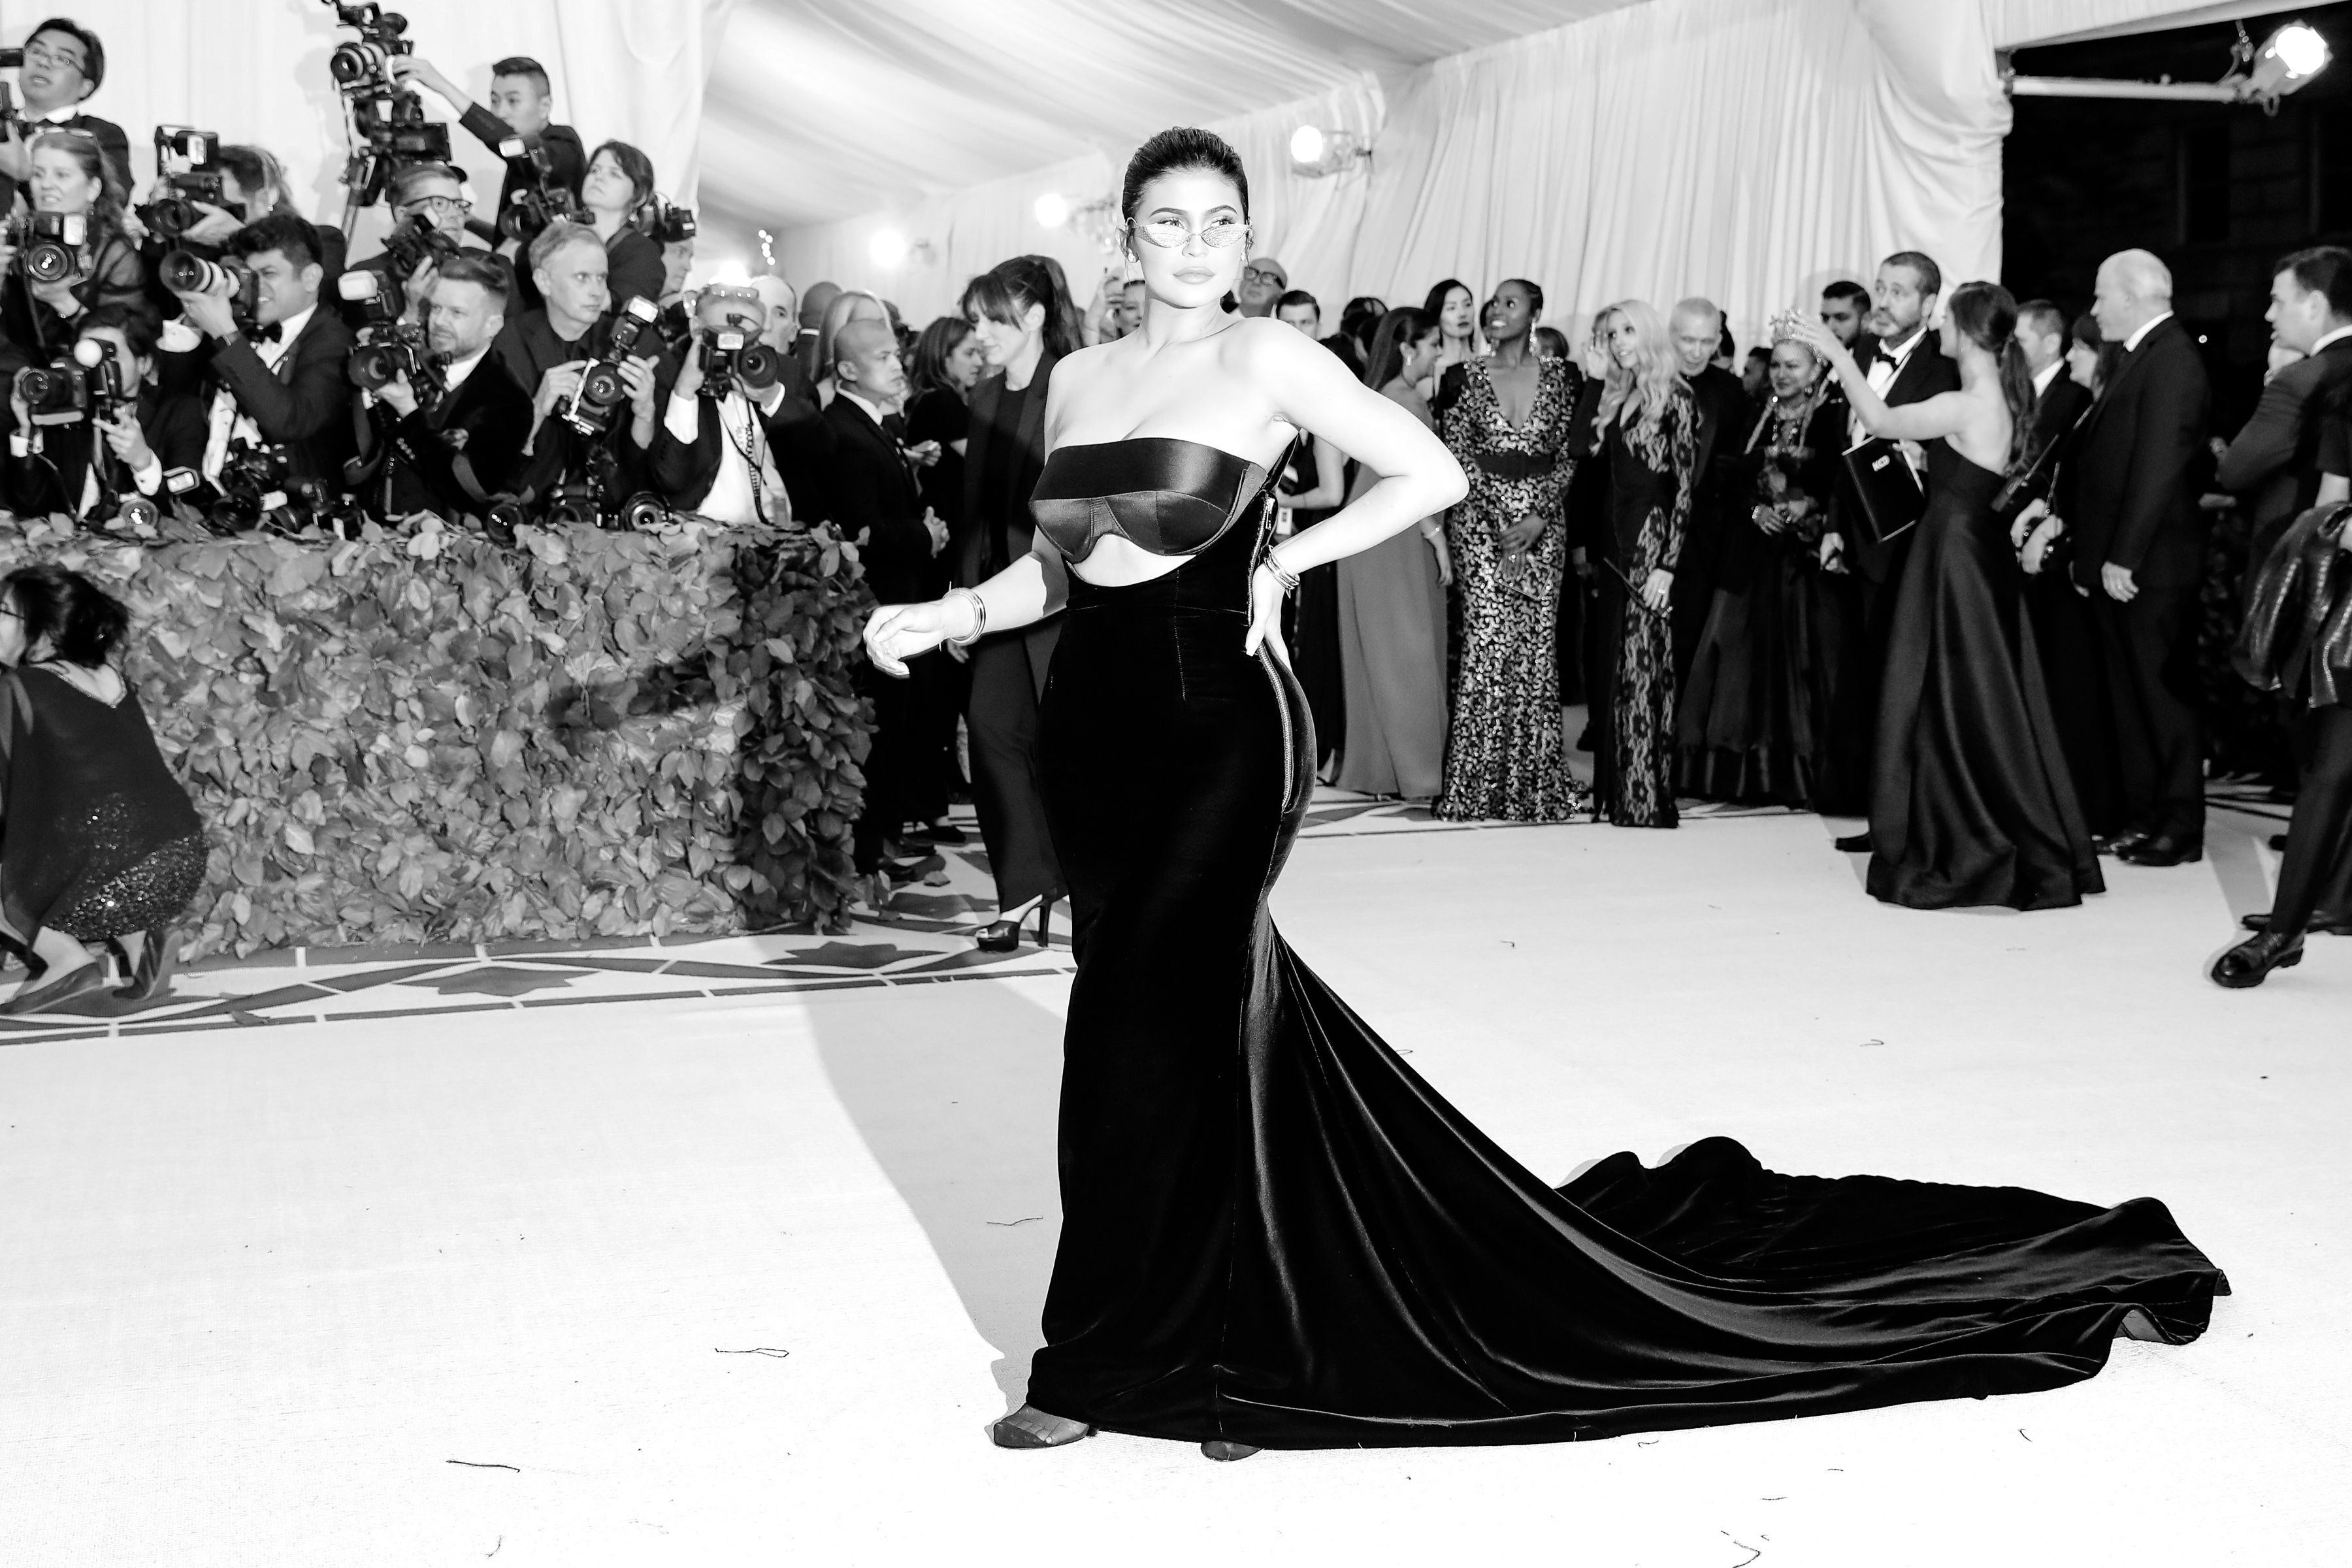 A black and white photo of Kylie Jenner on the red carpet, wearing a floor-length black gown with a long train.